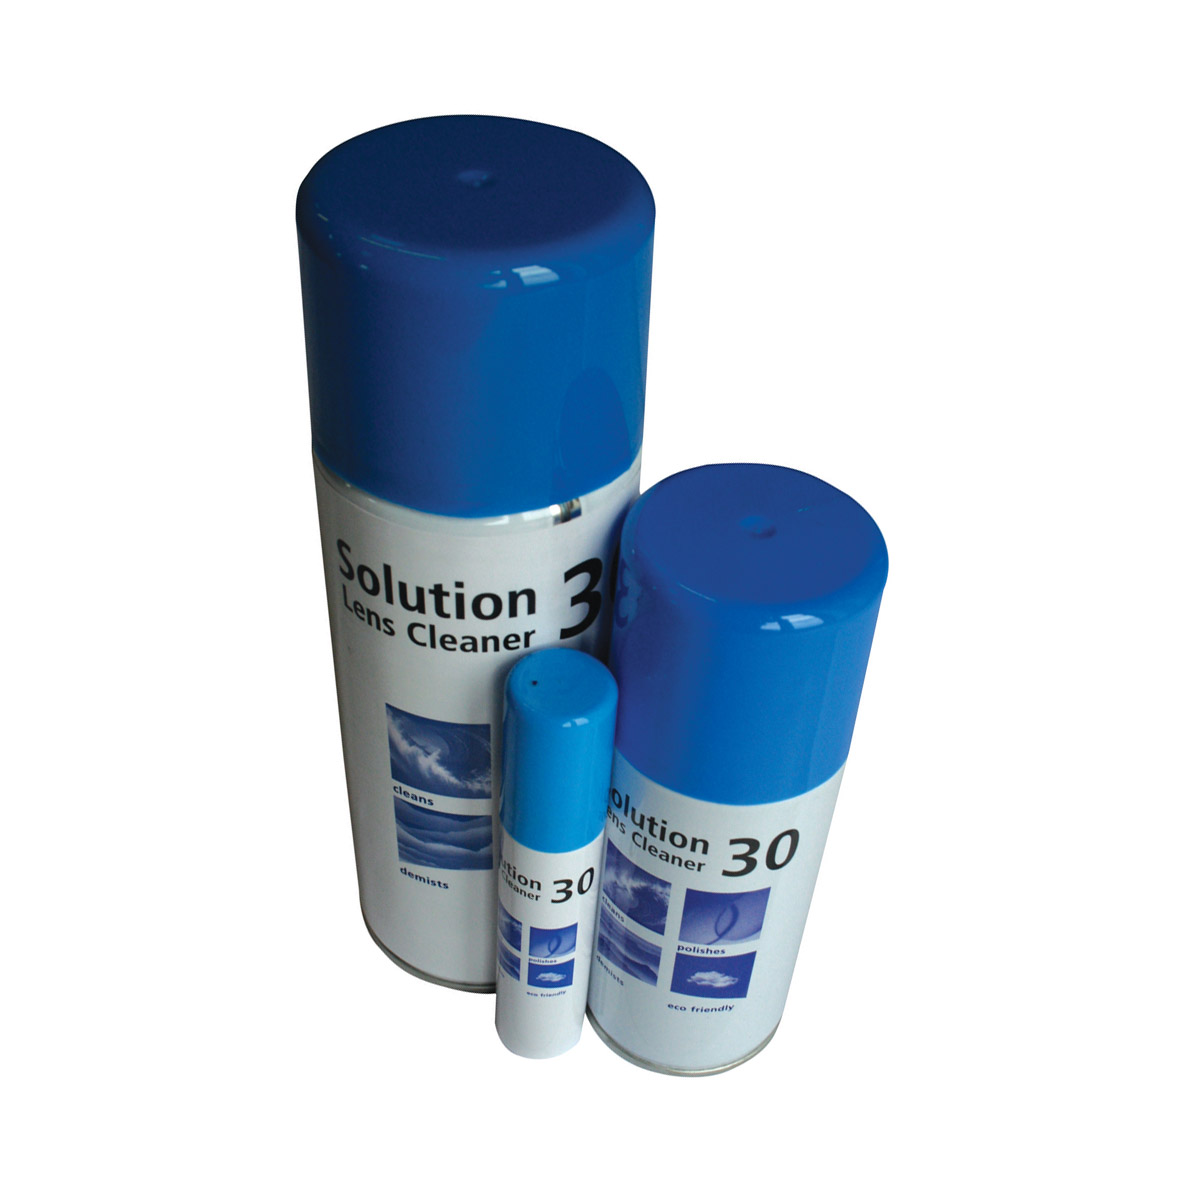 Solution 30 Lens Cleaner